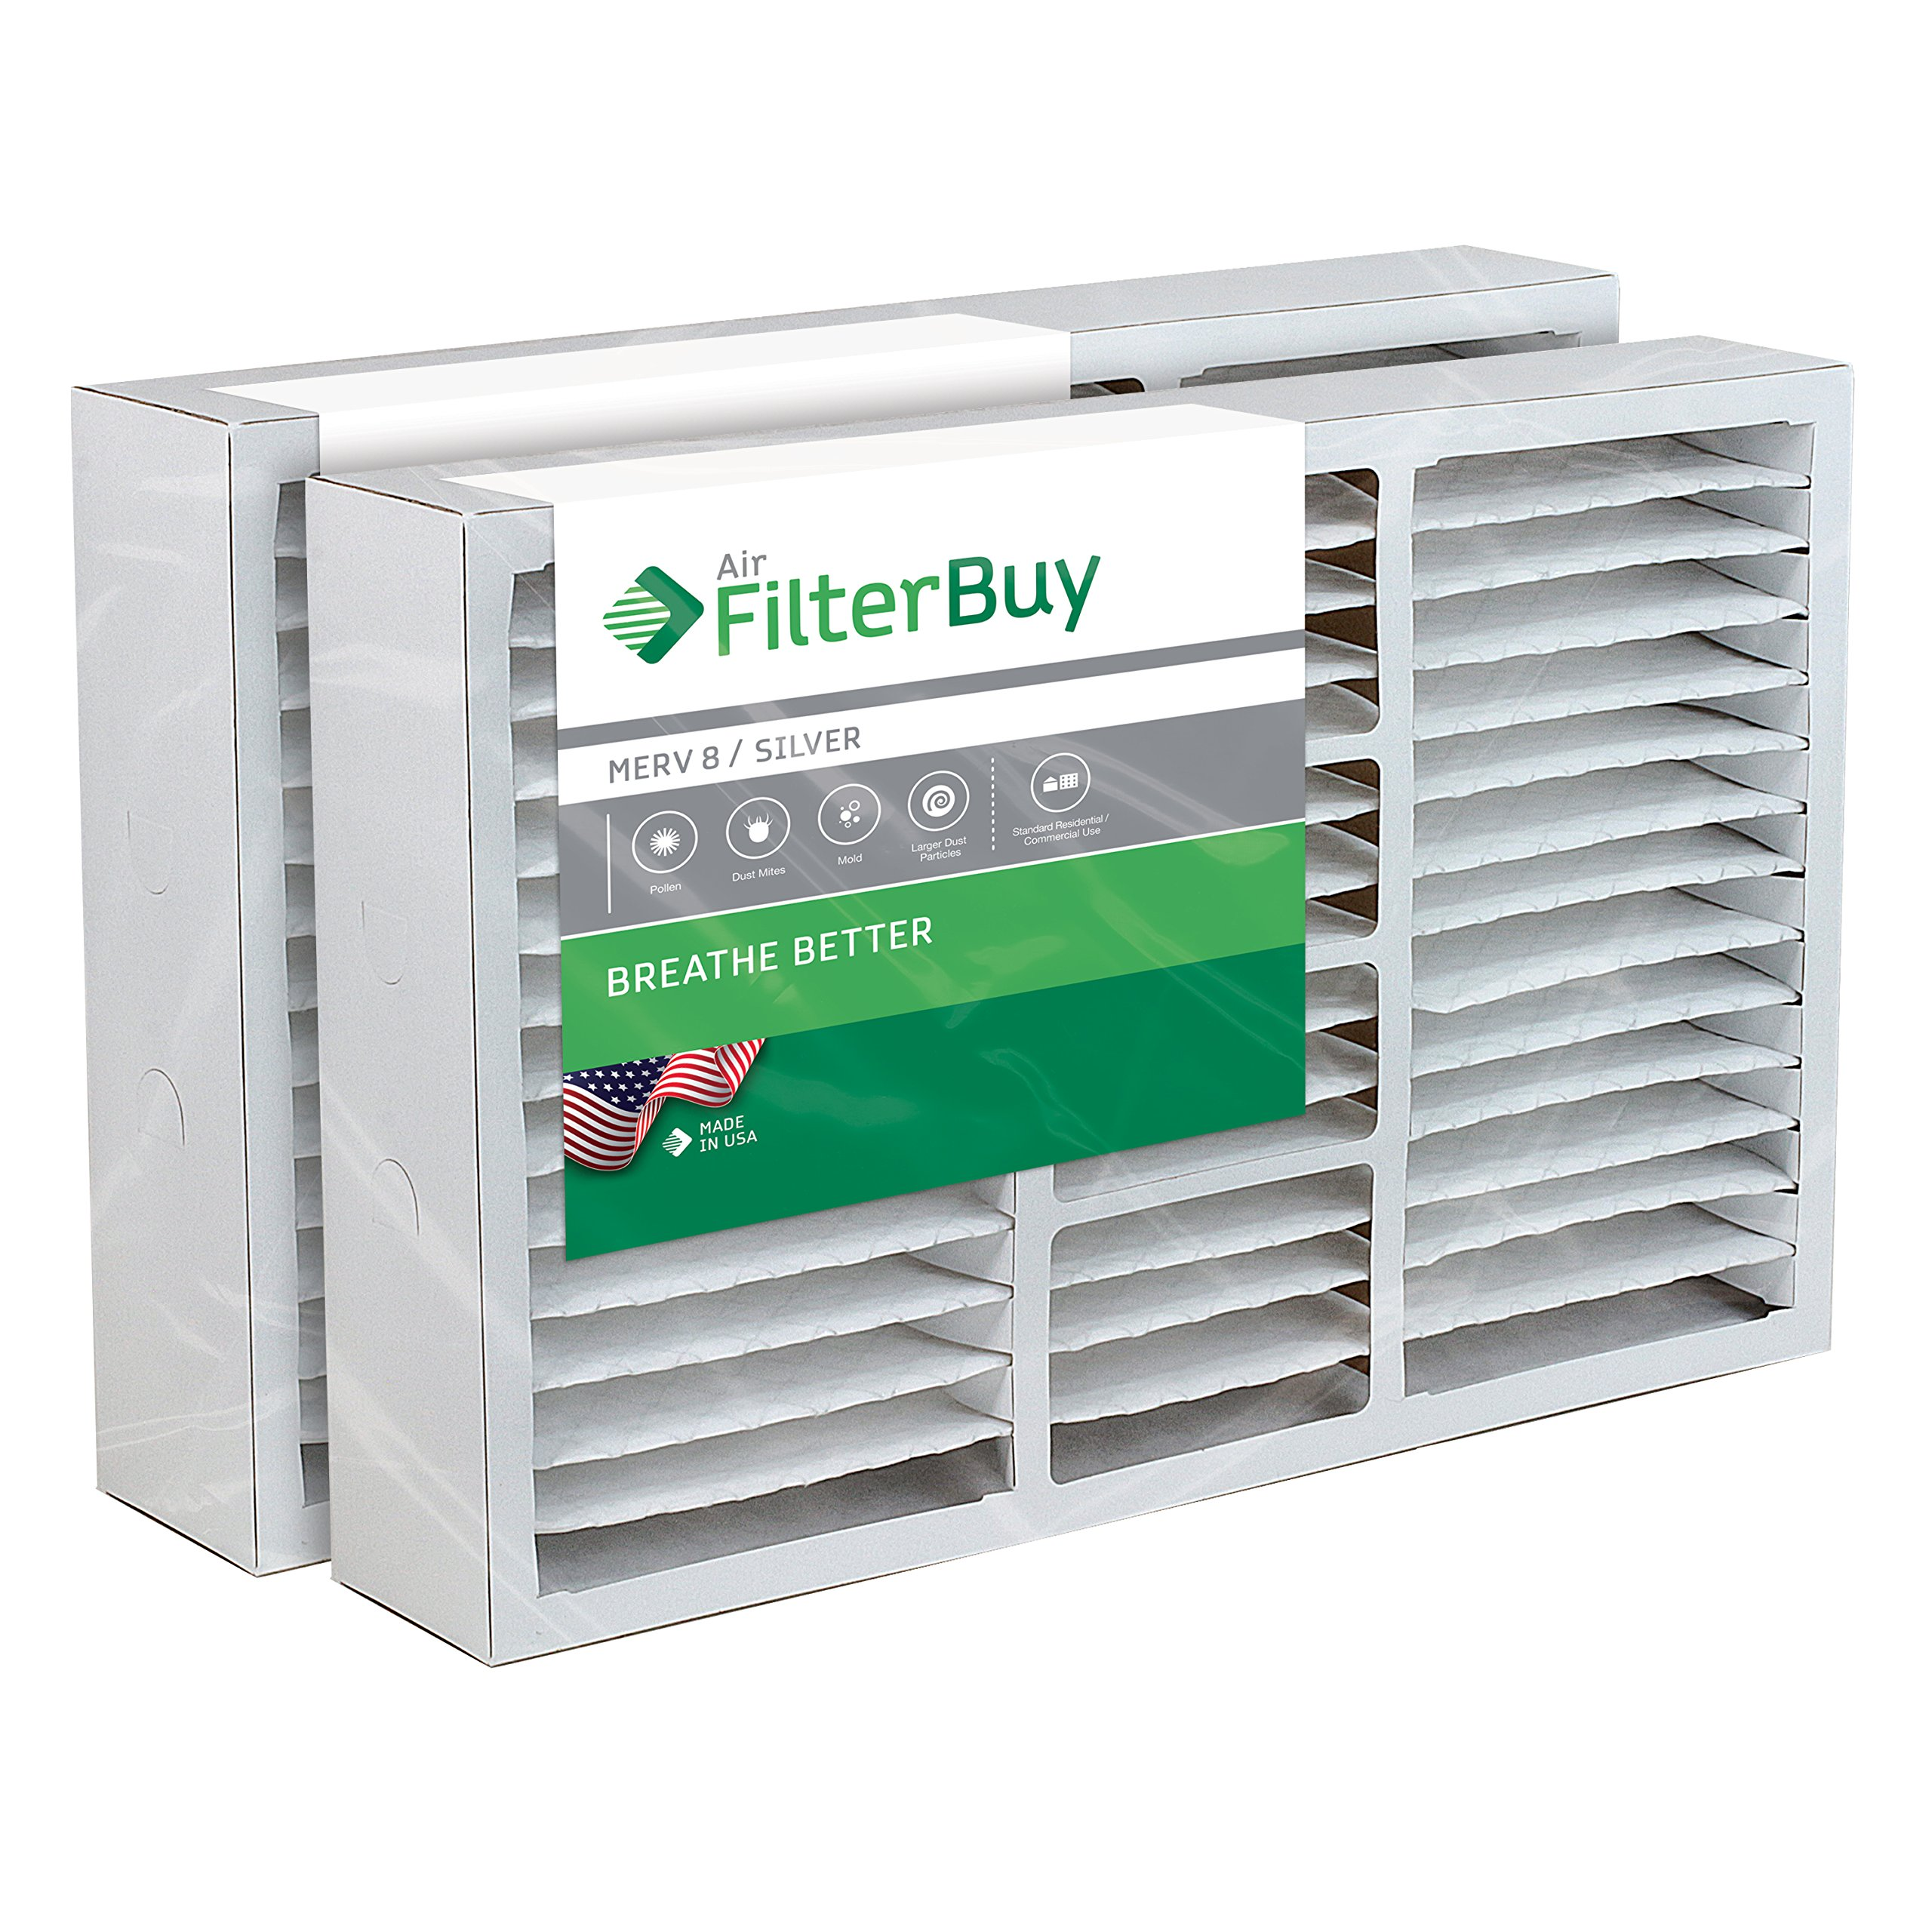 FilterBuy 16x25x5 Lennox X0583, X6670, HCF16-10 Box Replacement Pleated AC Furnace Air Filters - Pack of 2 - MERV 8 (AFB Silver). Manufactured by FilterBuy in the USA.